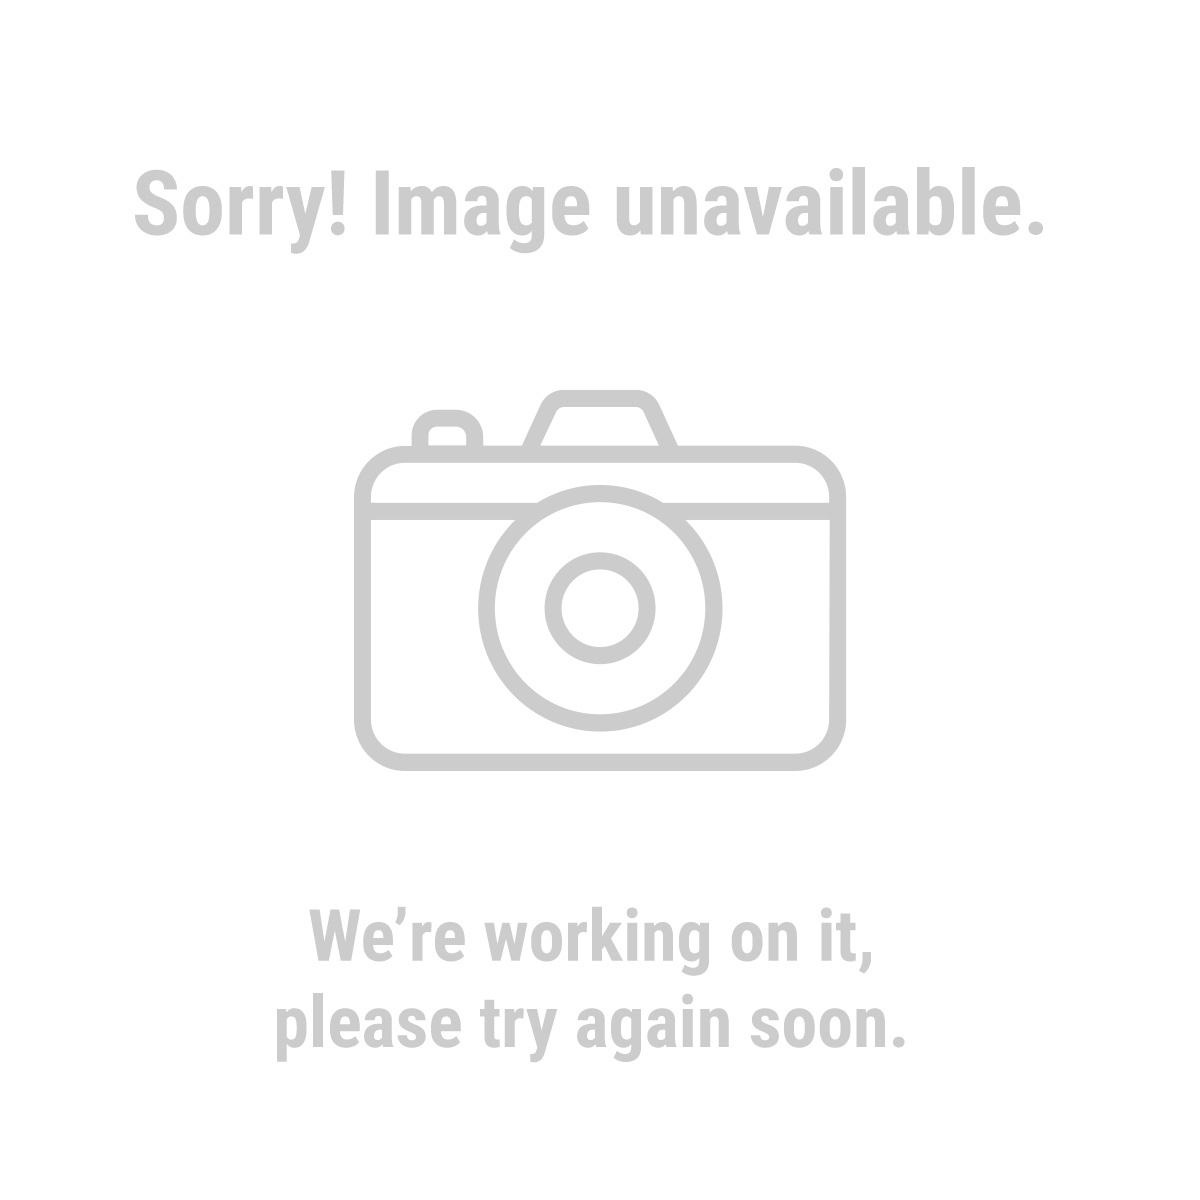 Vanguard 62946 100 ft. x 12 Gauge Outdoor Extension Cord